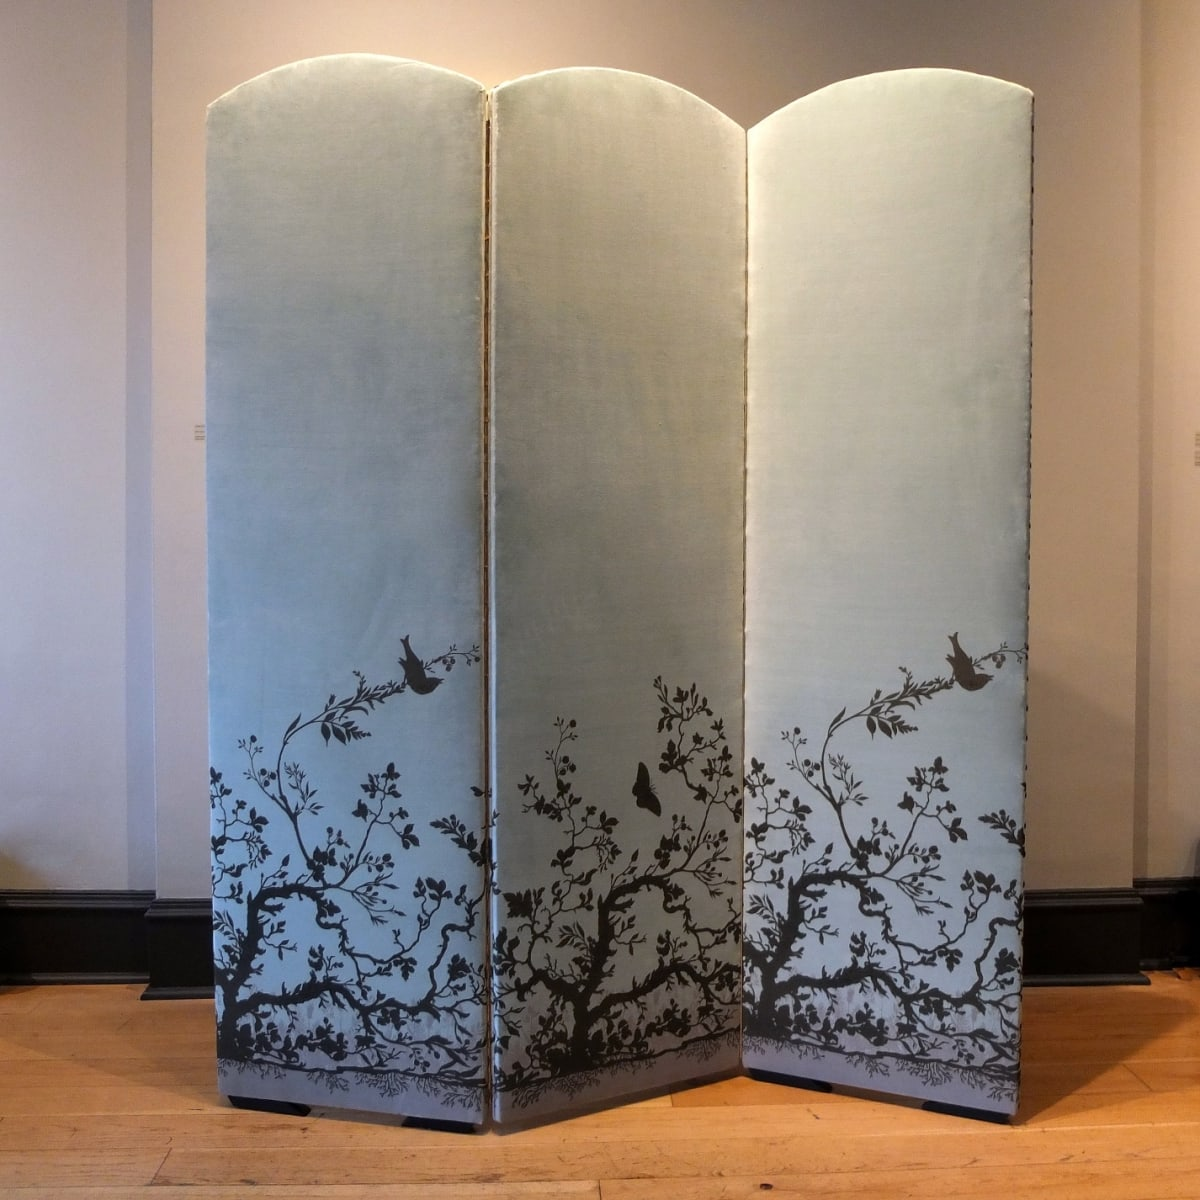 Timorous Beasties Bird Branch, 2019 folding screen upholstered in Bird Branch fabric with one-off screen print design 180 x 154.5 cm (3 panels, 51.5 cm width each)